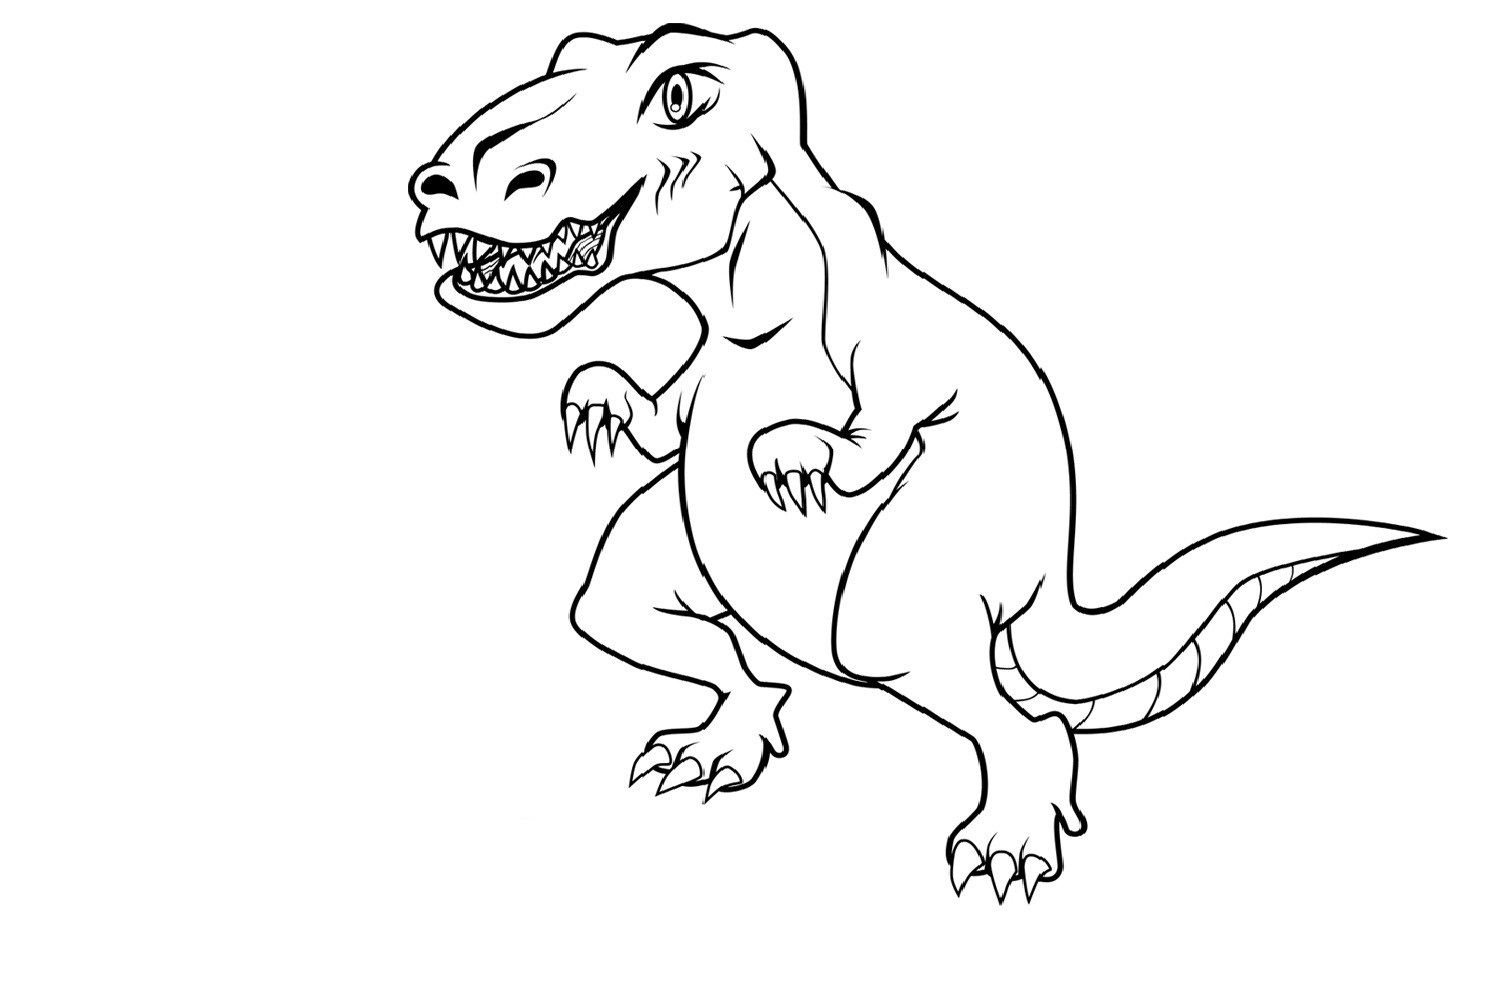 free printable dinosaur coloring pages - Dinosaurs Coloring Pages Print